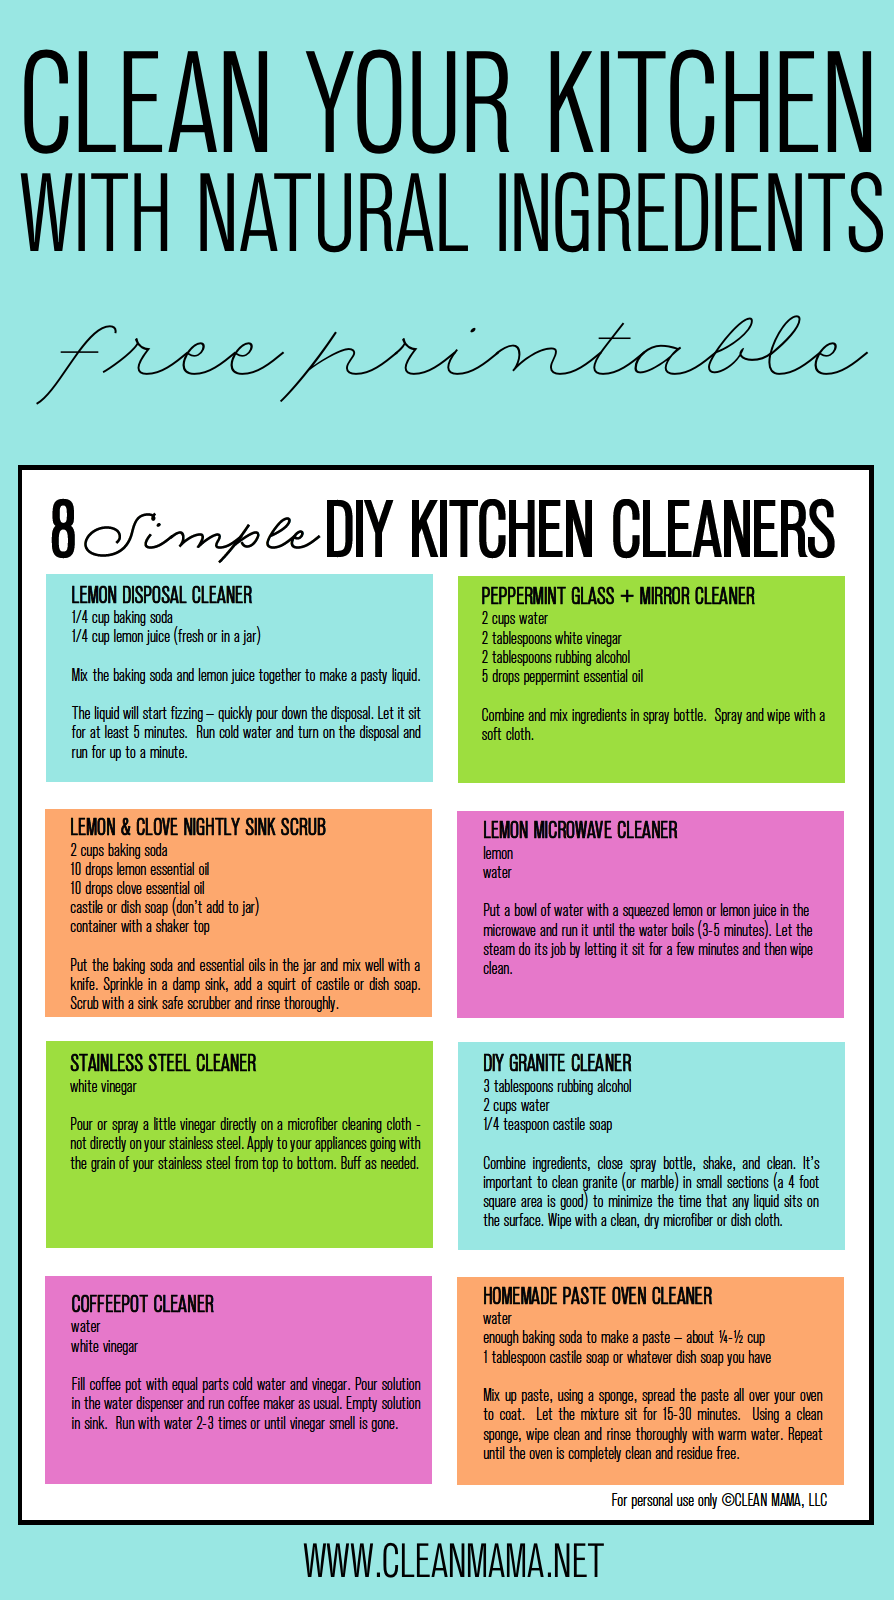 8 Simple DIY Kitchen Cleaners + FREE Printable